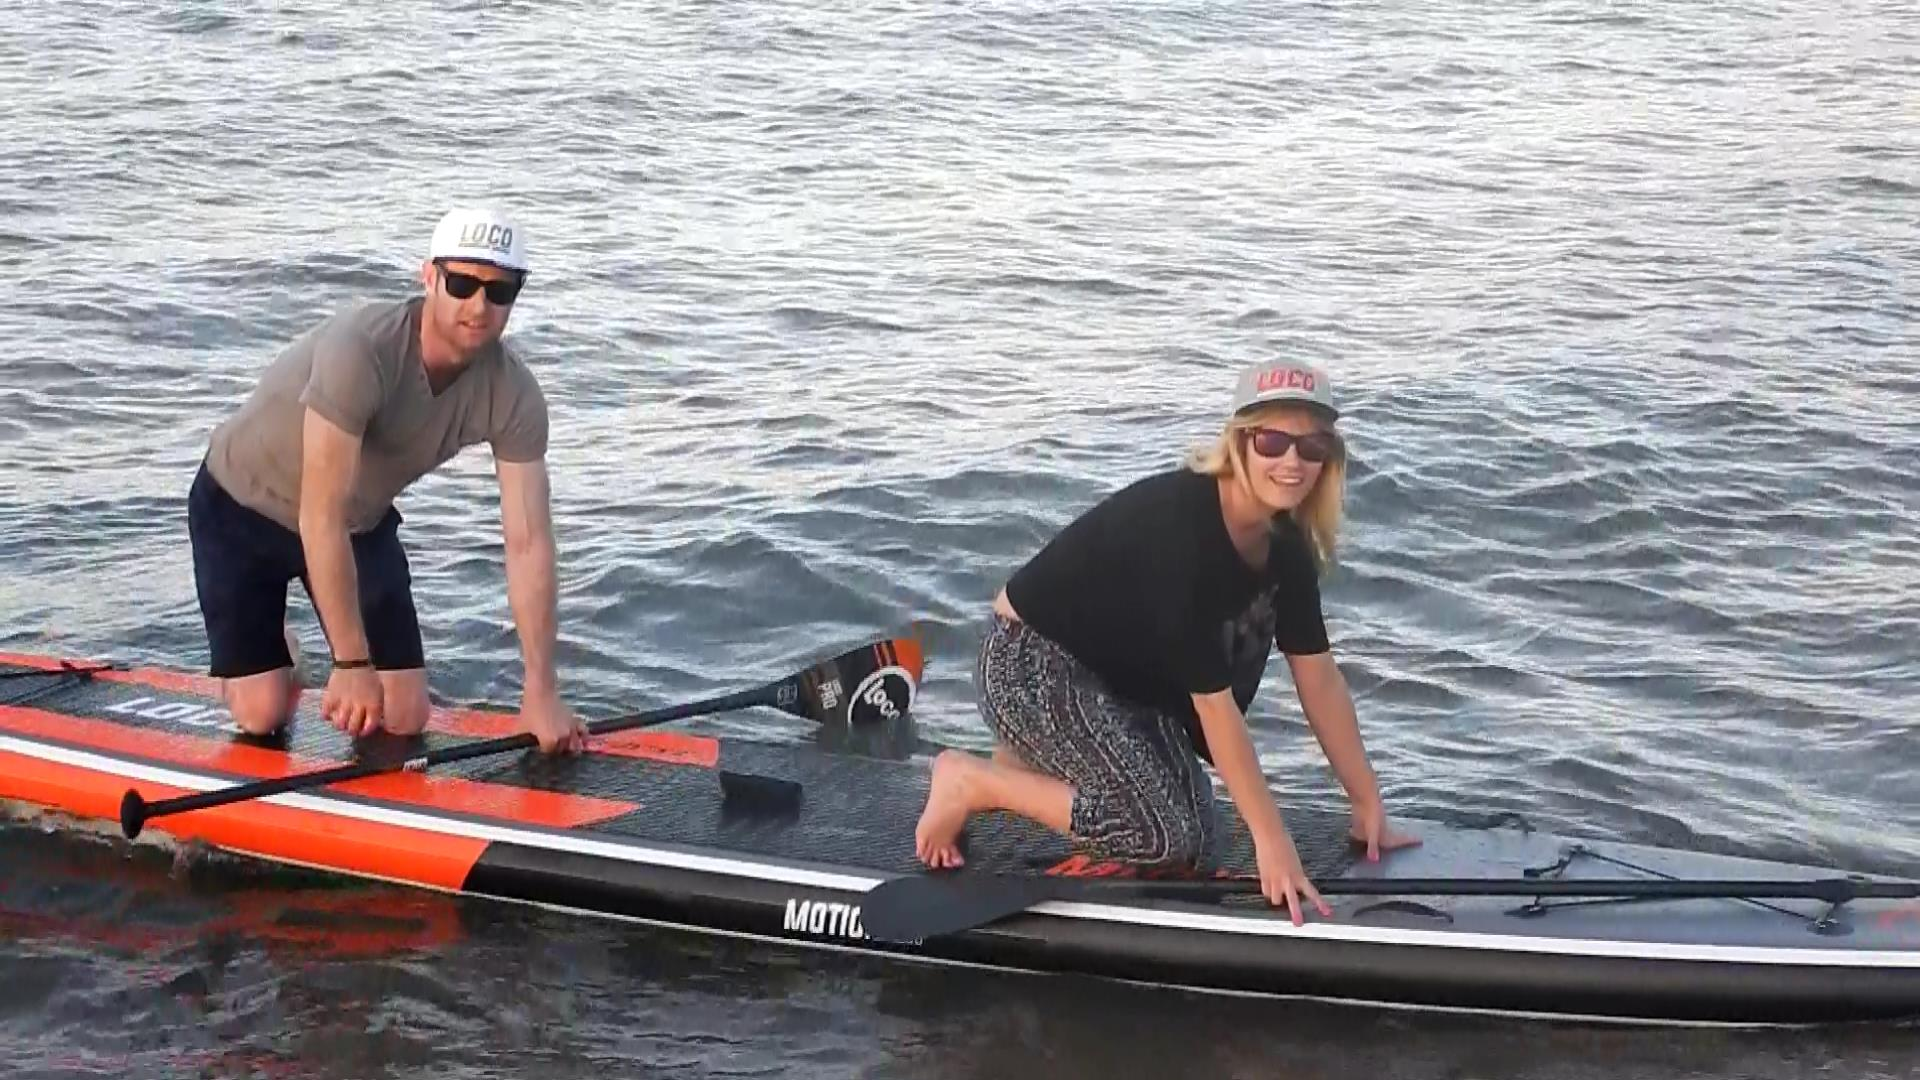 Couple exiting the water on the Loco Tandem Inflatable SUP